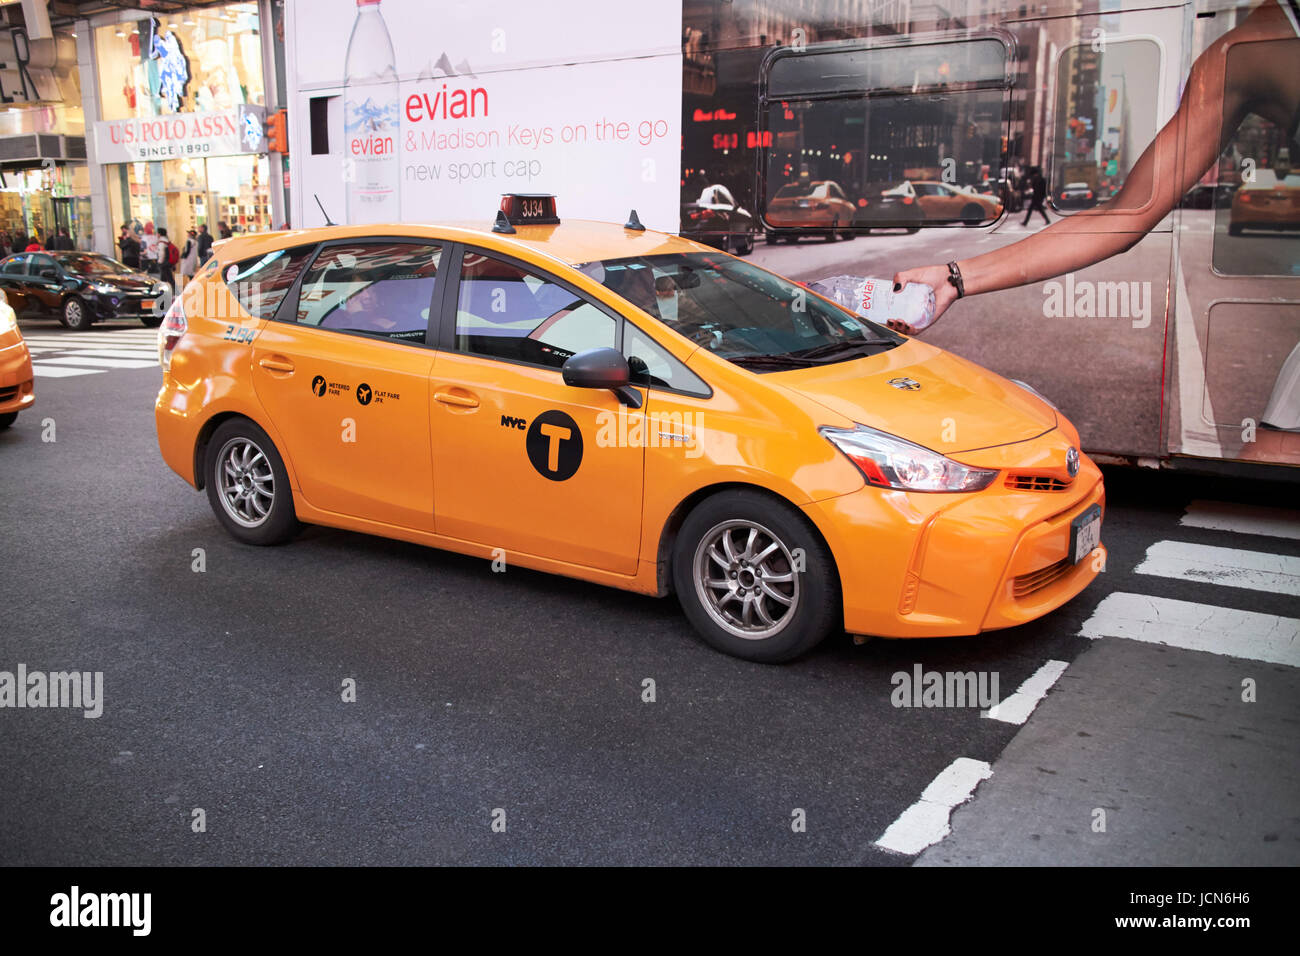 toyota prius V yellow cab in the evening in Times Square New York City USA - Stock Image